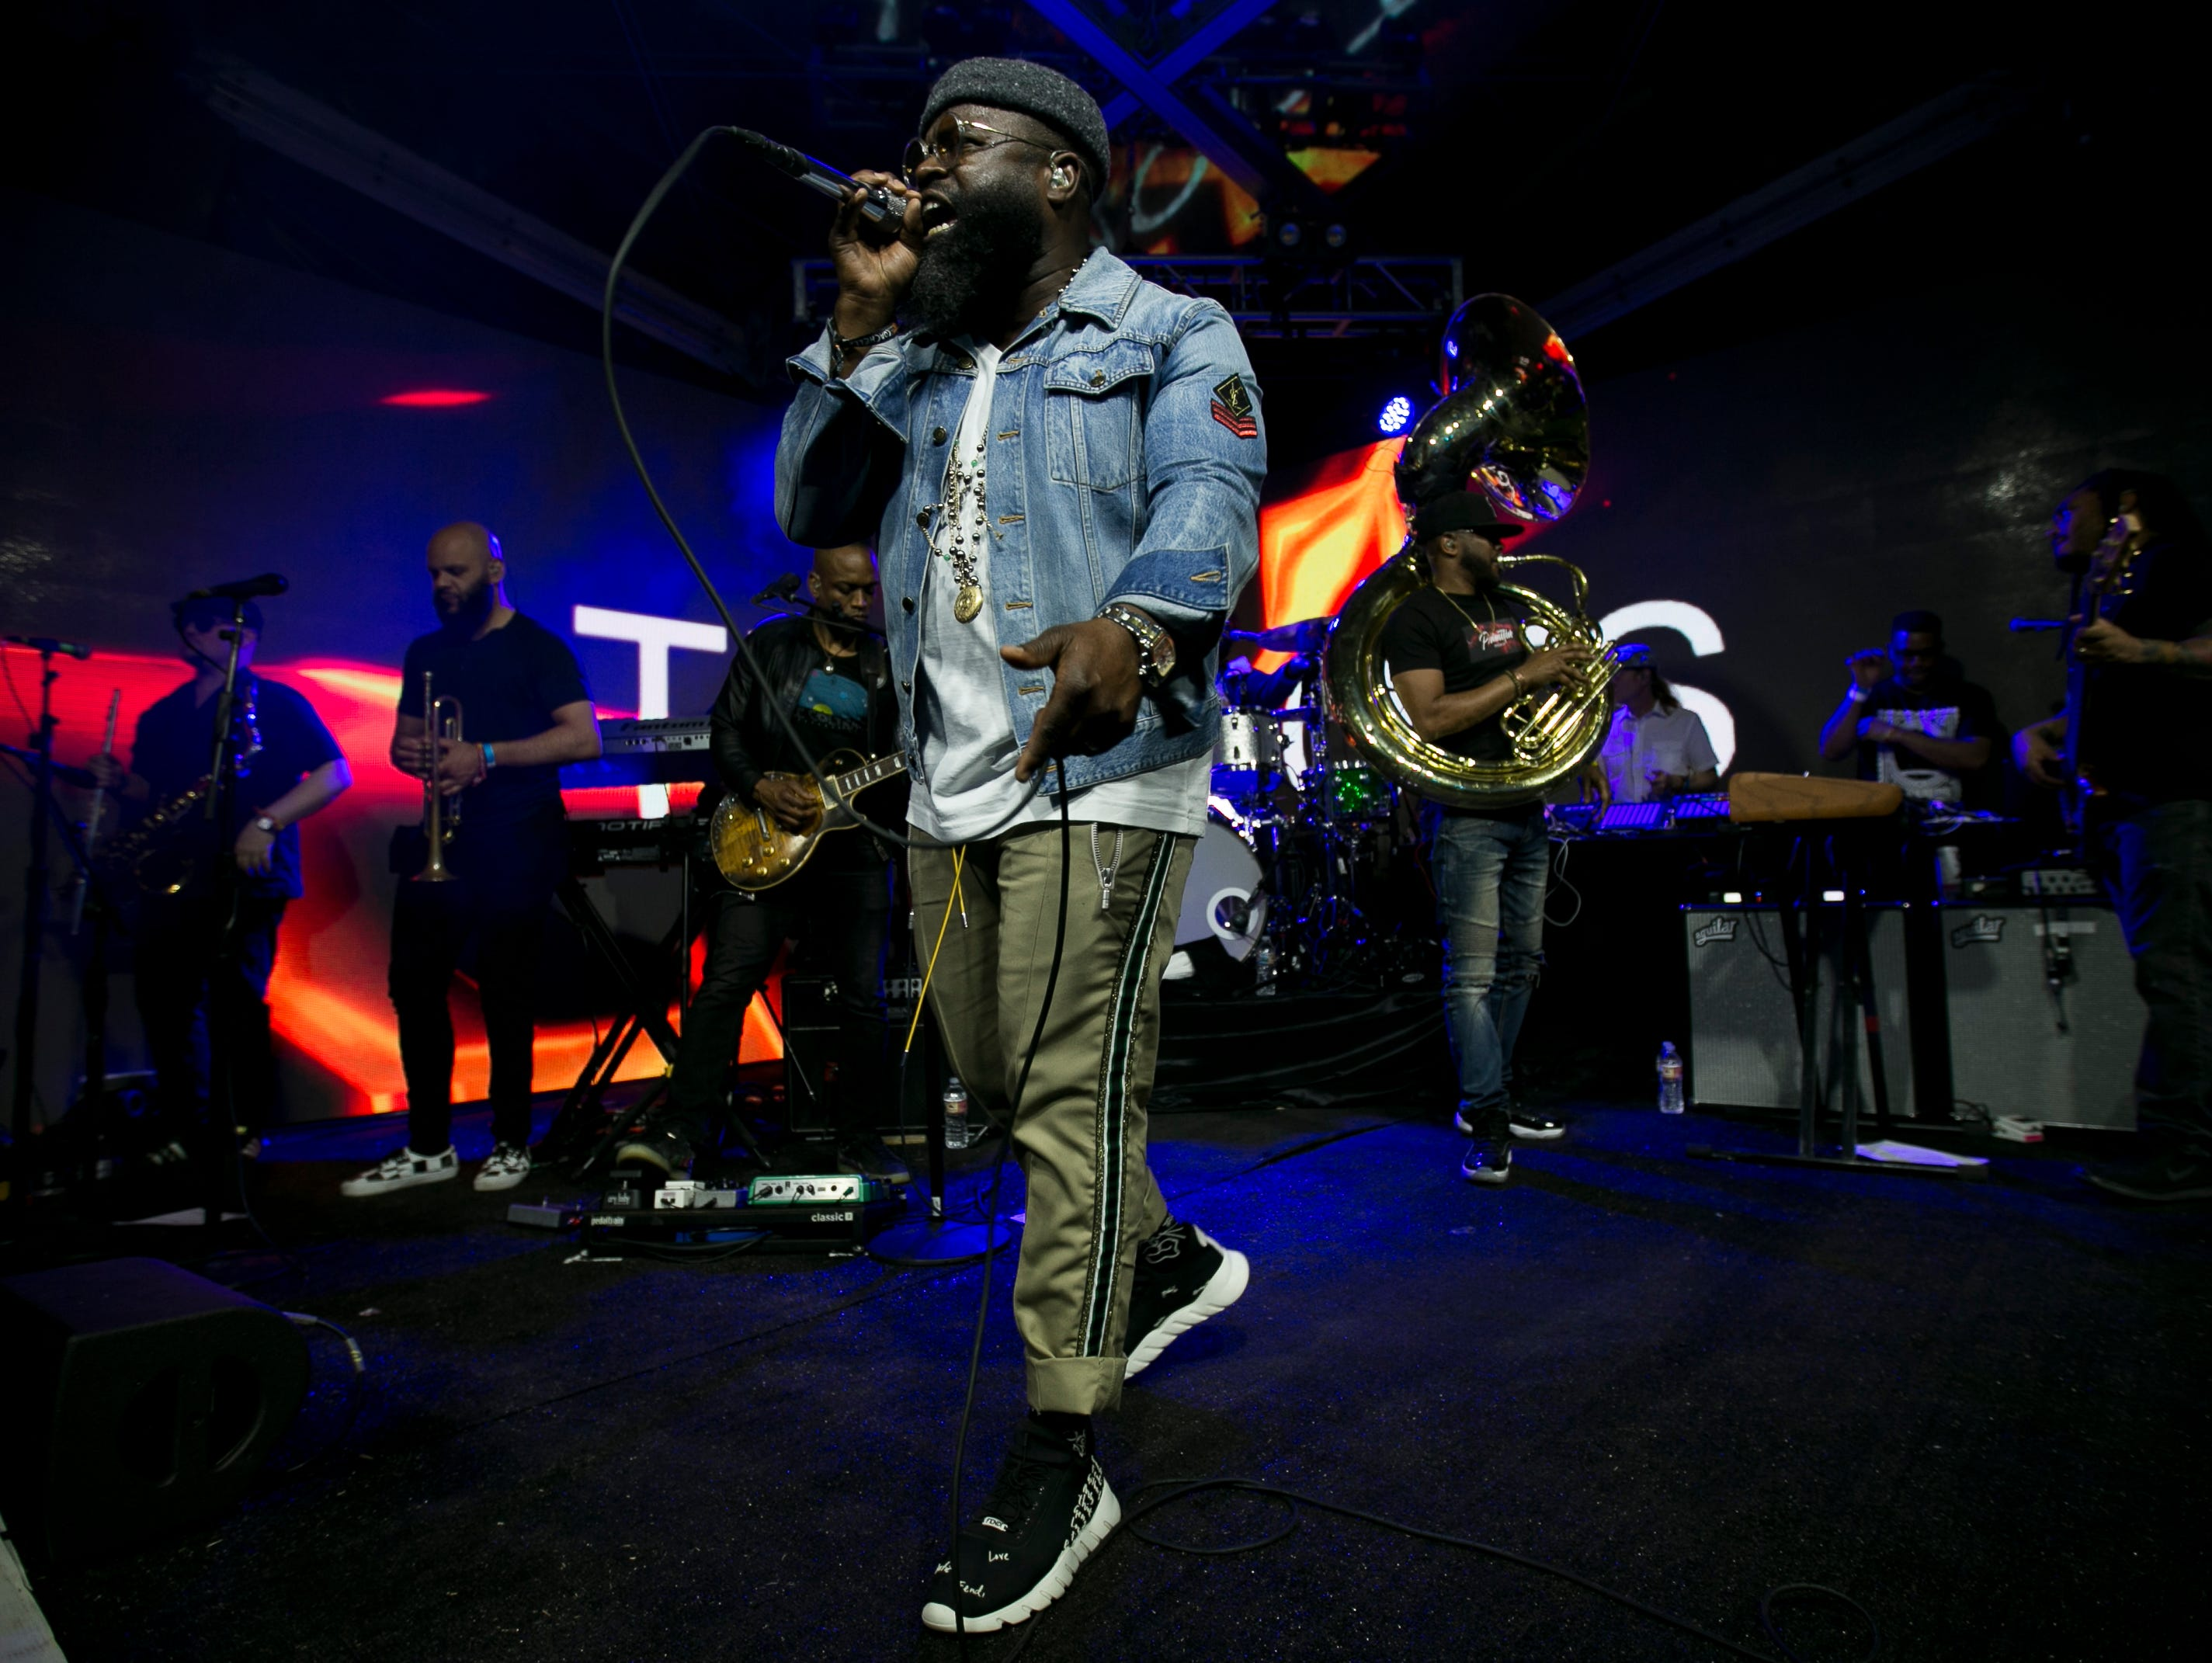 The Roots perform in the Heineken House at the Coachella Valley Music and Arts Festival in Indio, Calif., April 13, 2019.